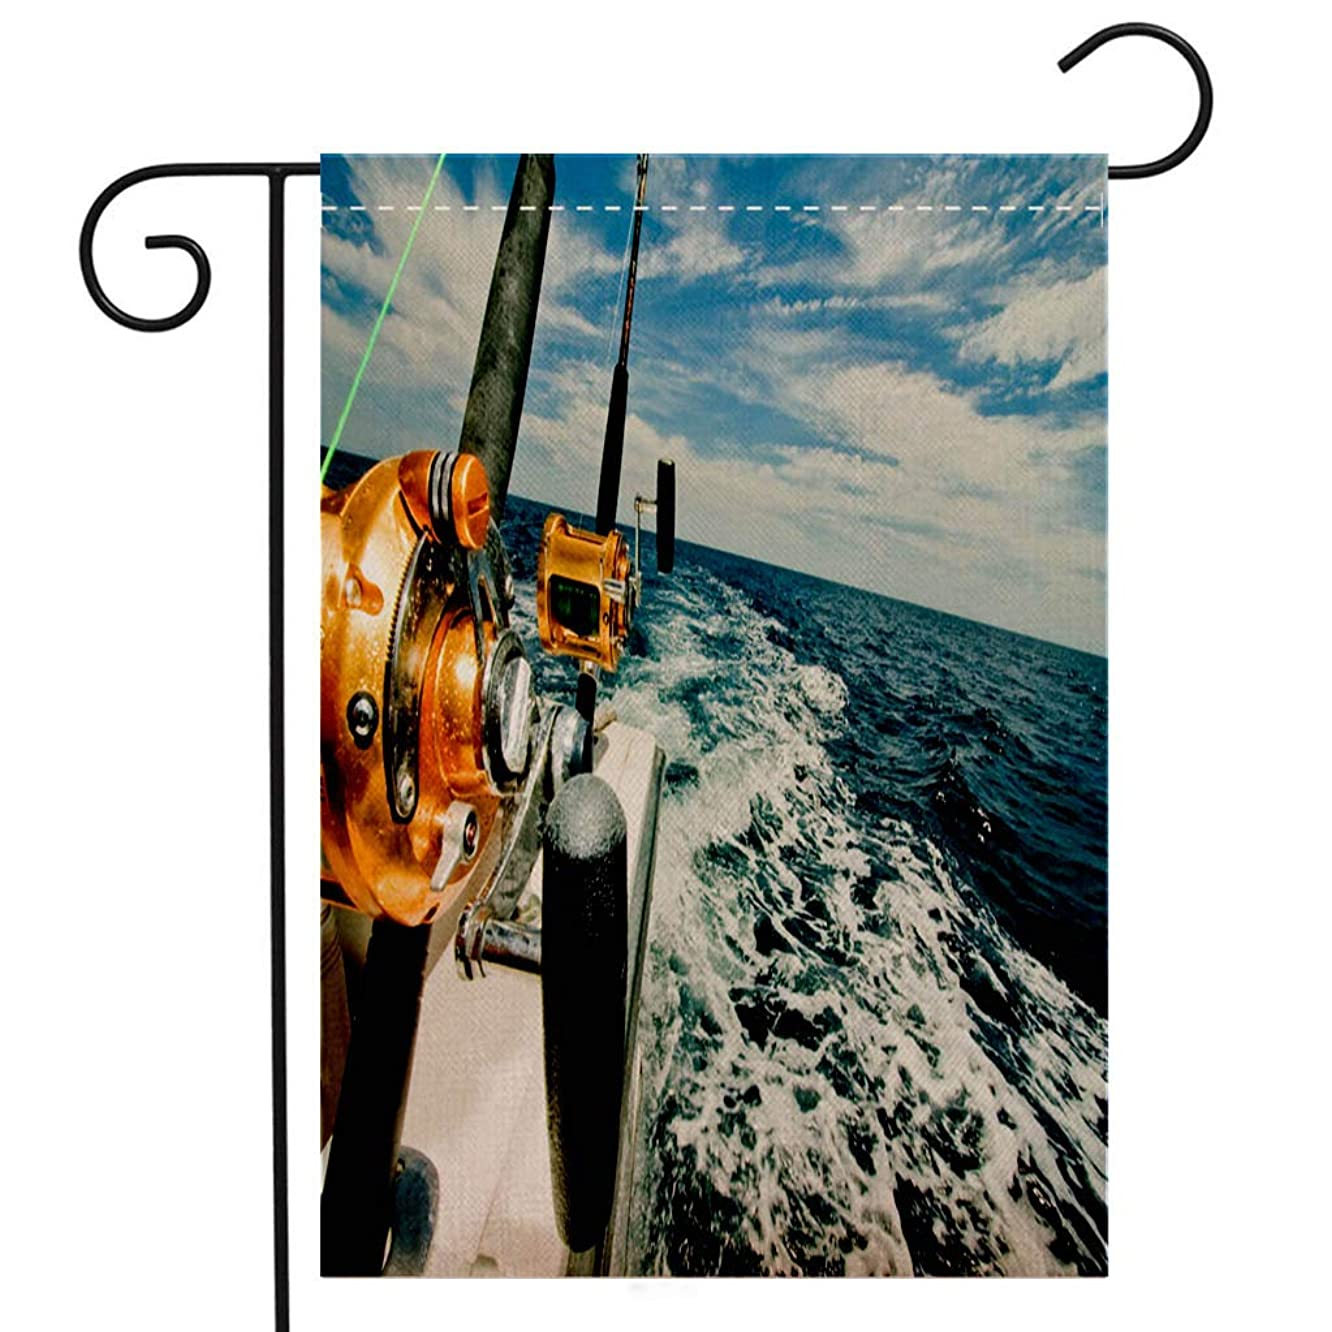 BEIVIVI Creative Home Garden Flag Big Game Fishing Reels on a Boat in The Ocean Garden Flag Waterproof for Party Holiday Home Garden Decor